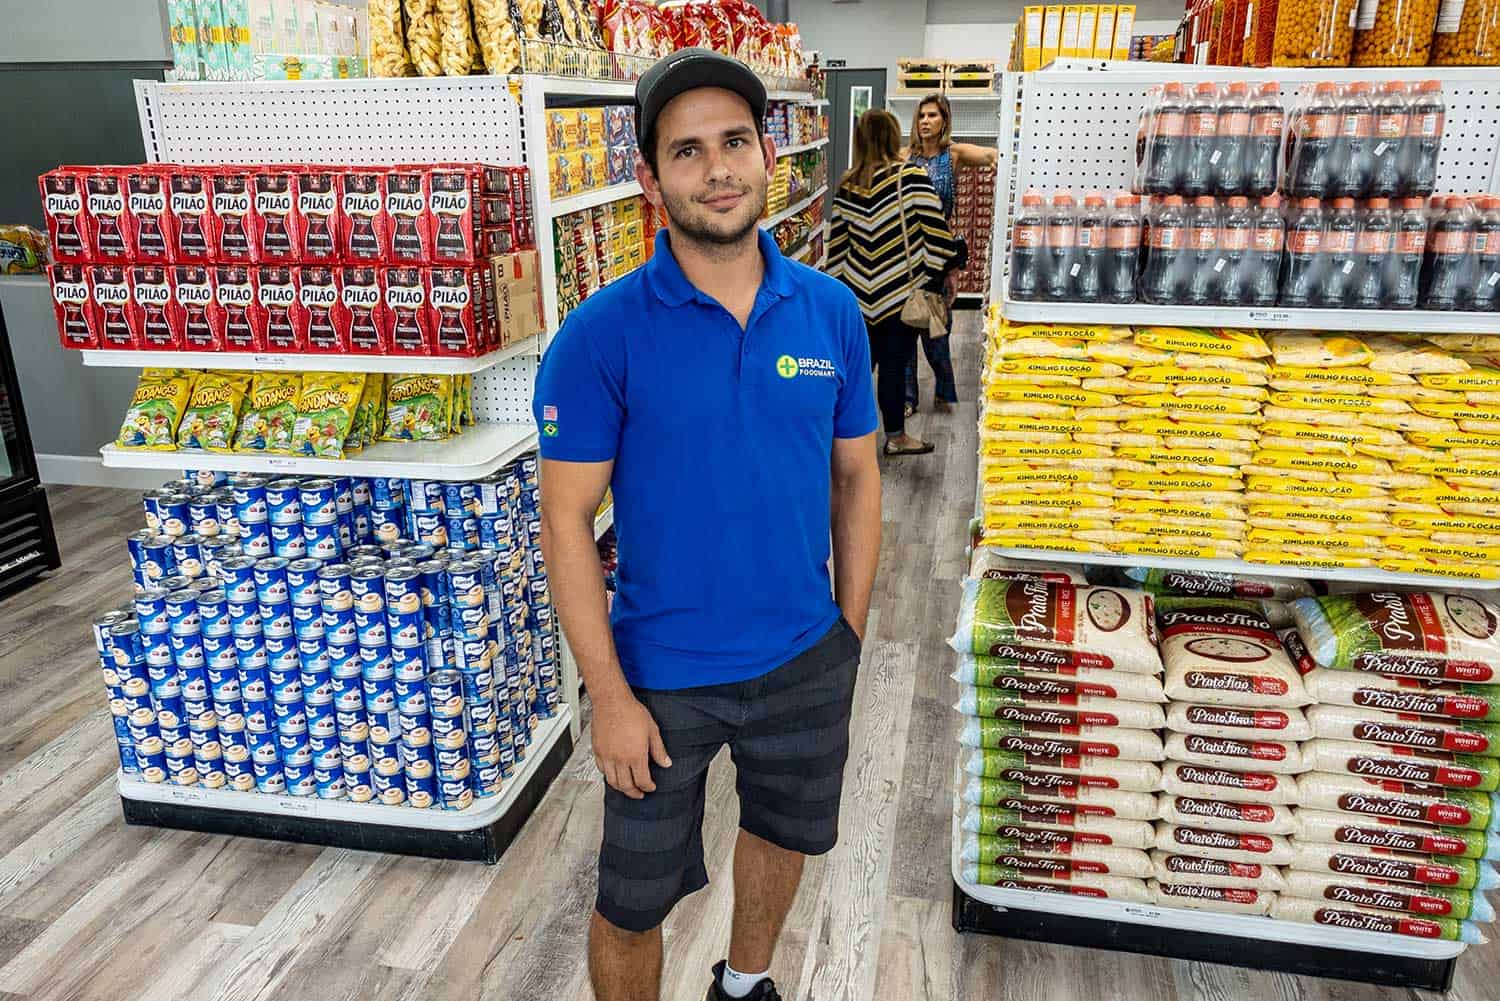 International business owner who uses AccuPOS Point of Sale for his store